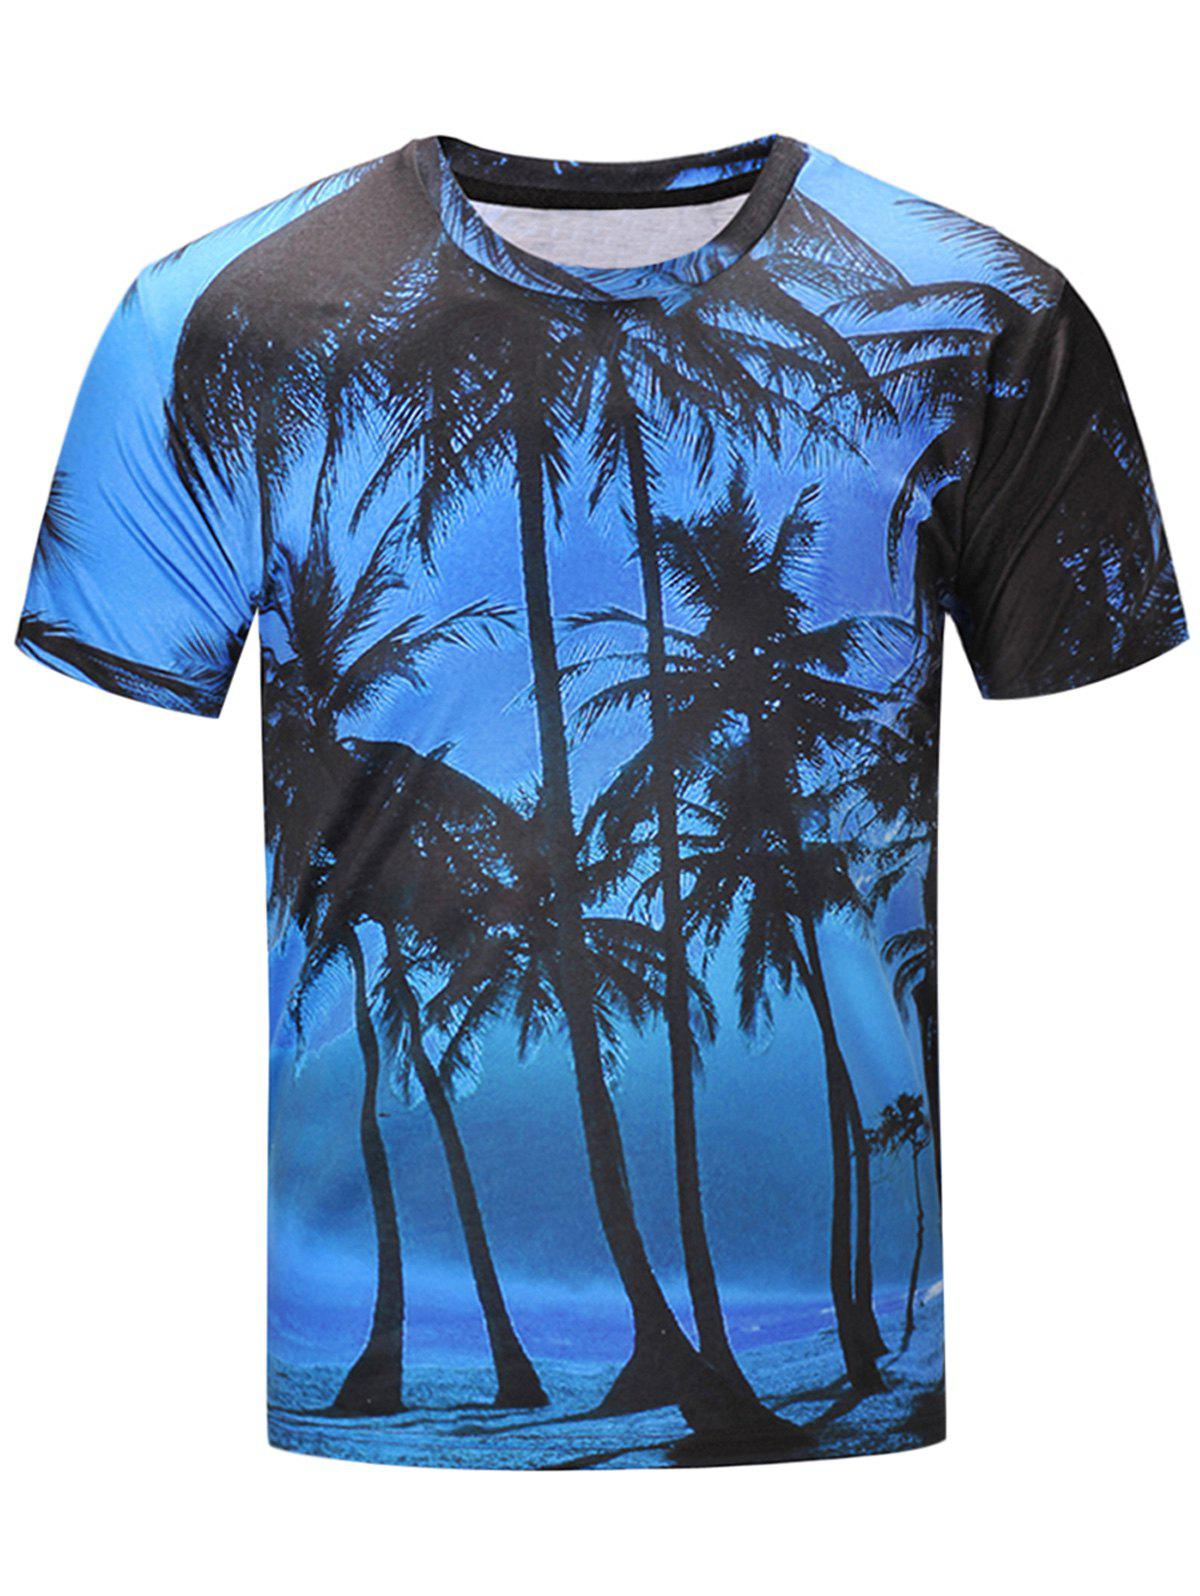 Hawaiian 3D Coconut Tree Print T-Shirt - COLORMIX 3XL